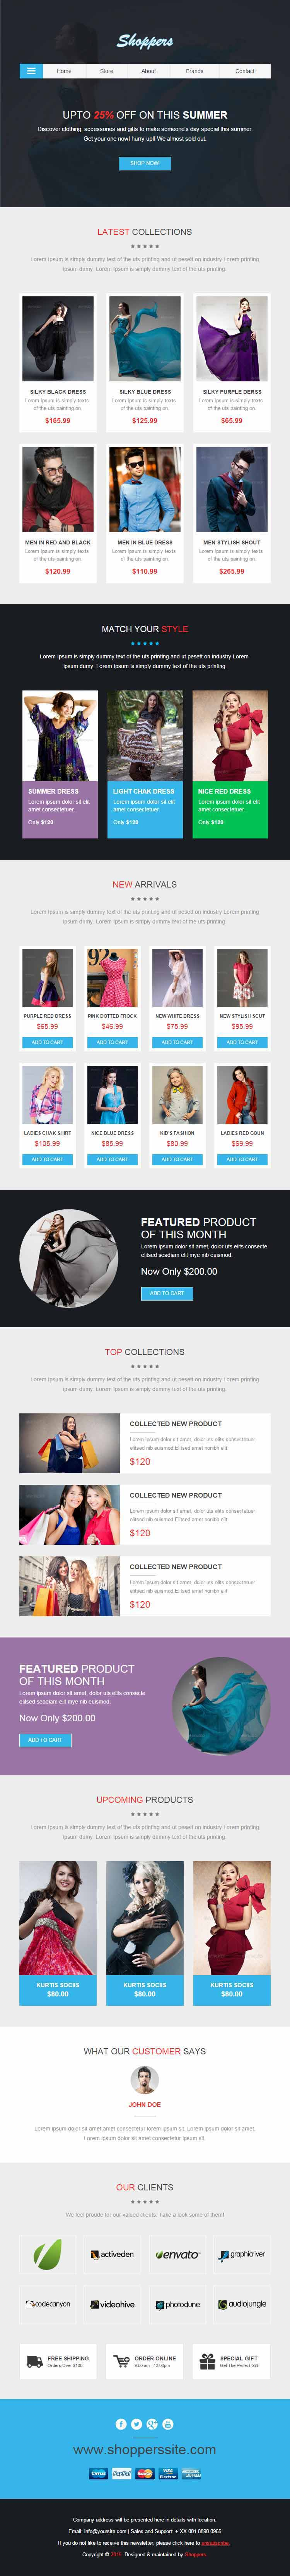 shoppers---Online-Theme-Builder2 professional responsive email template